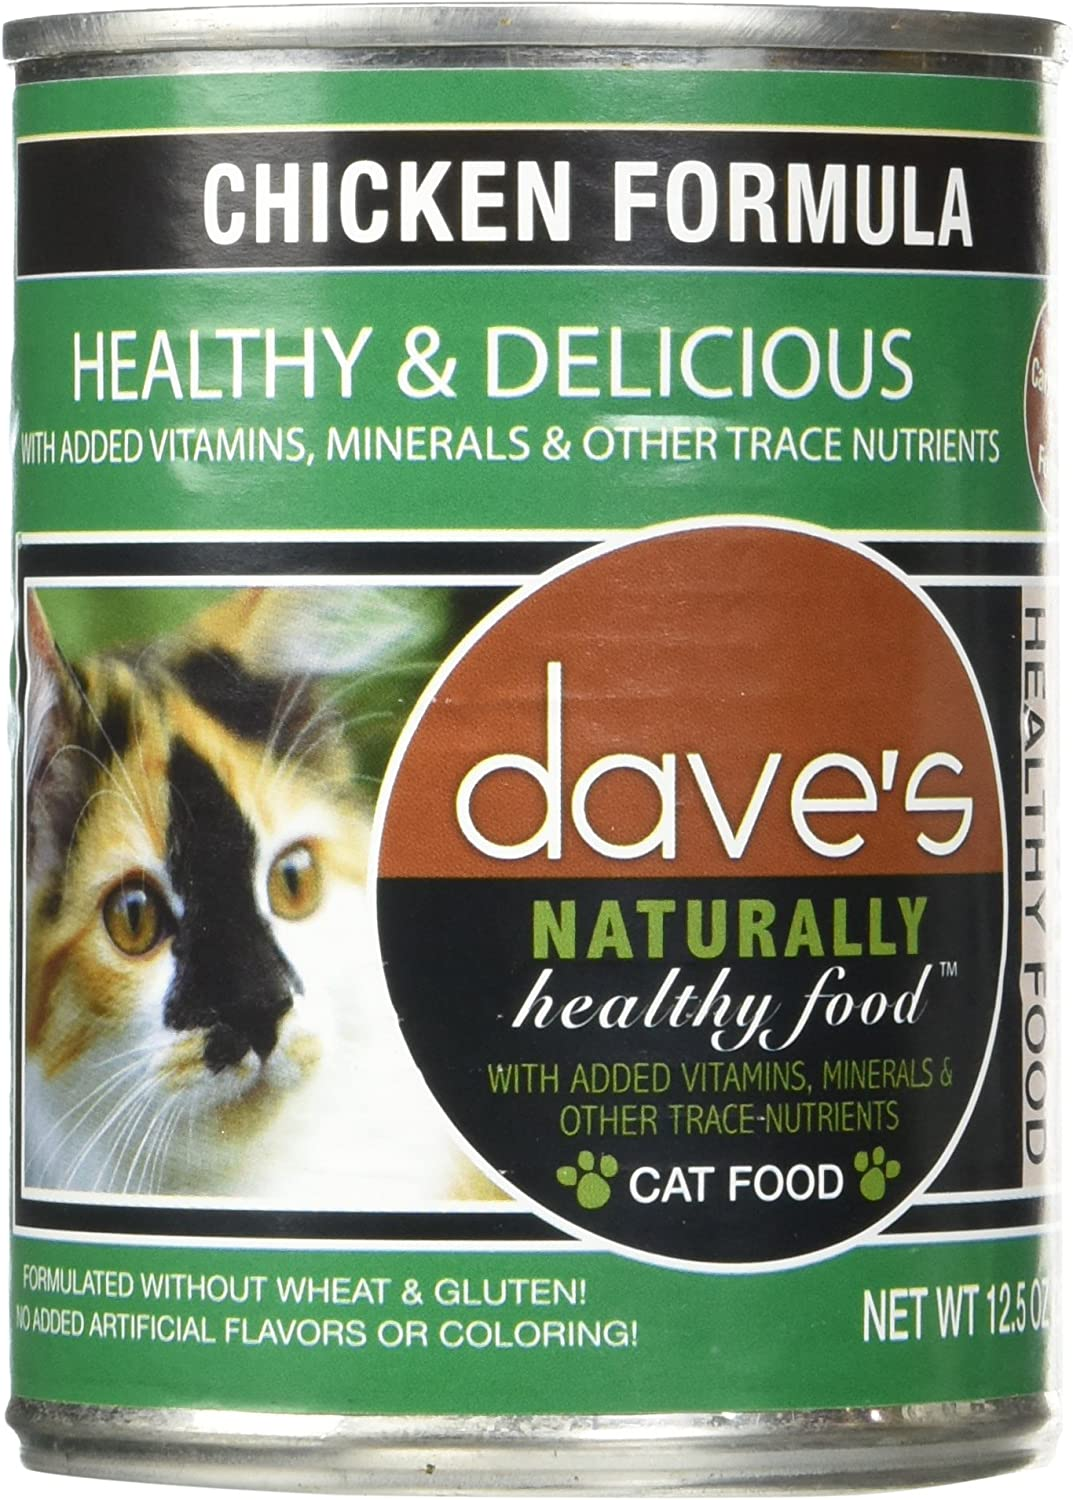 Dave's Naturally Healthy Chicken Formula For Cats - Canned Cat Food - 12.5 Ounce Cans, Case of 12